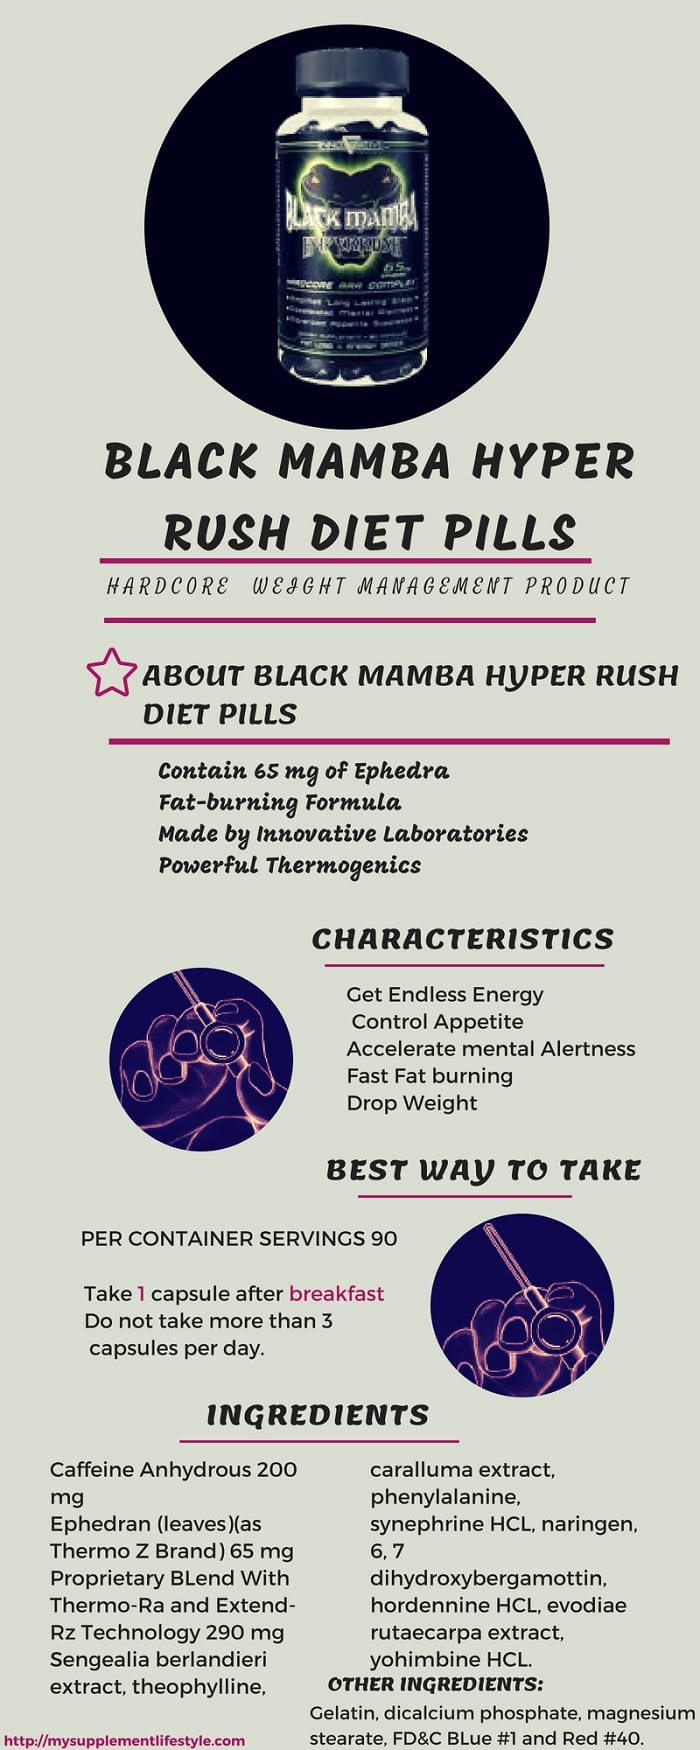 black mamba hyperrush diet pill review